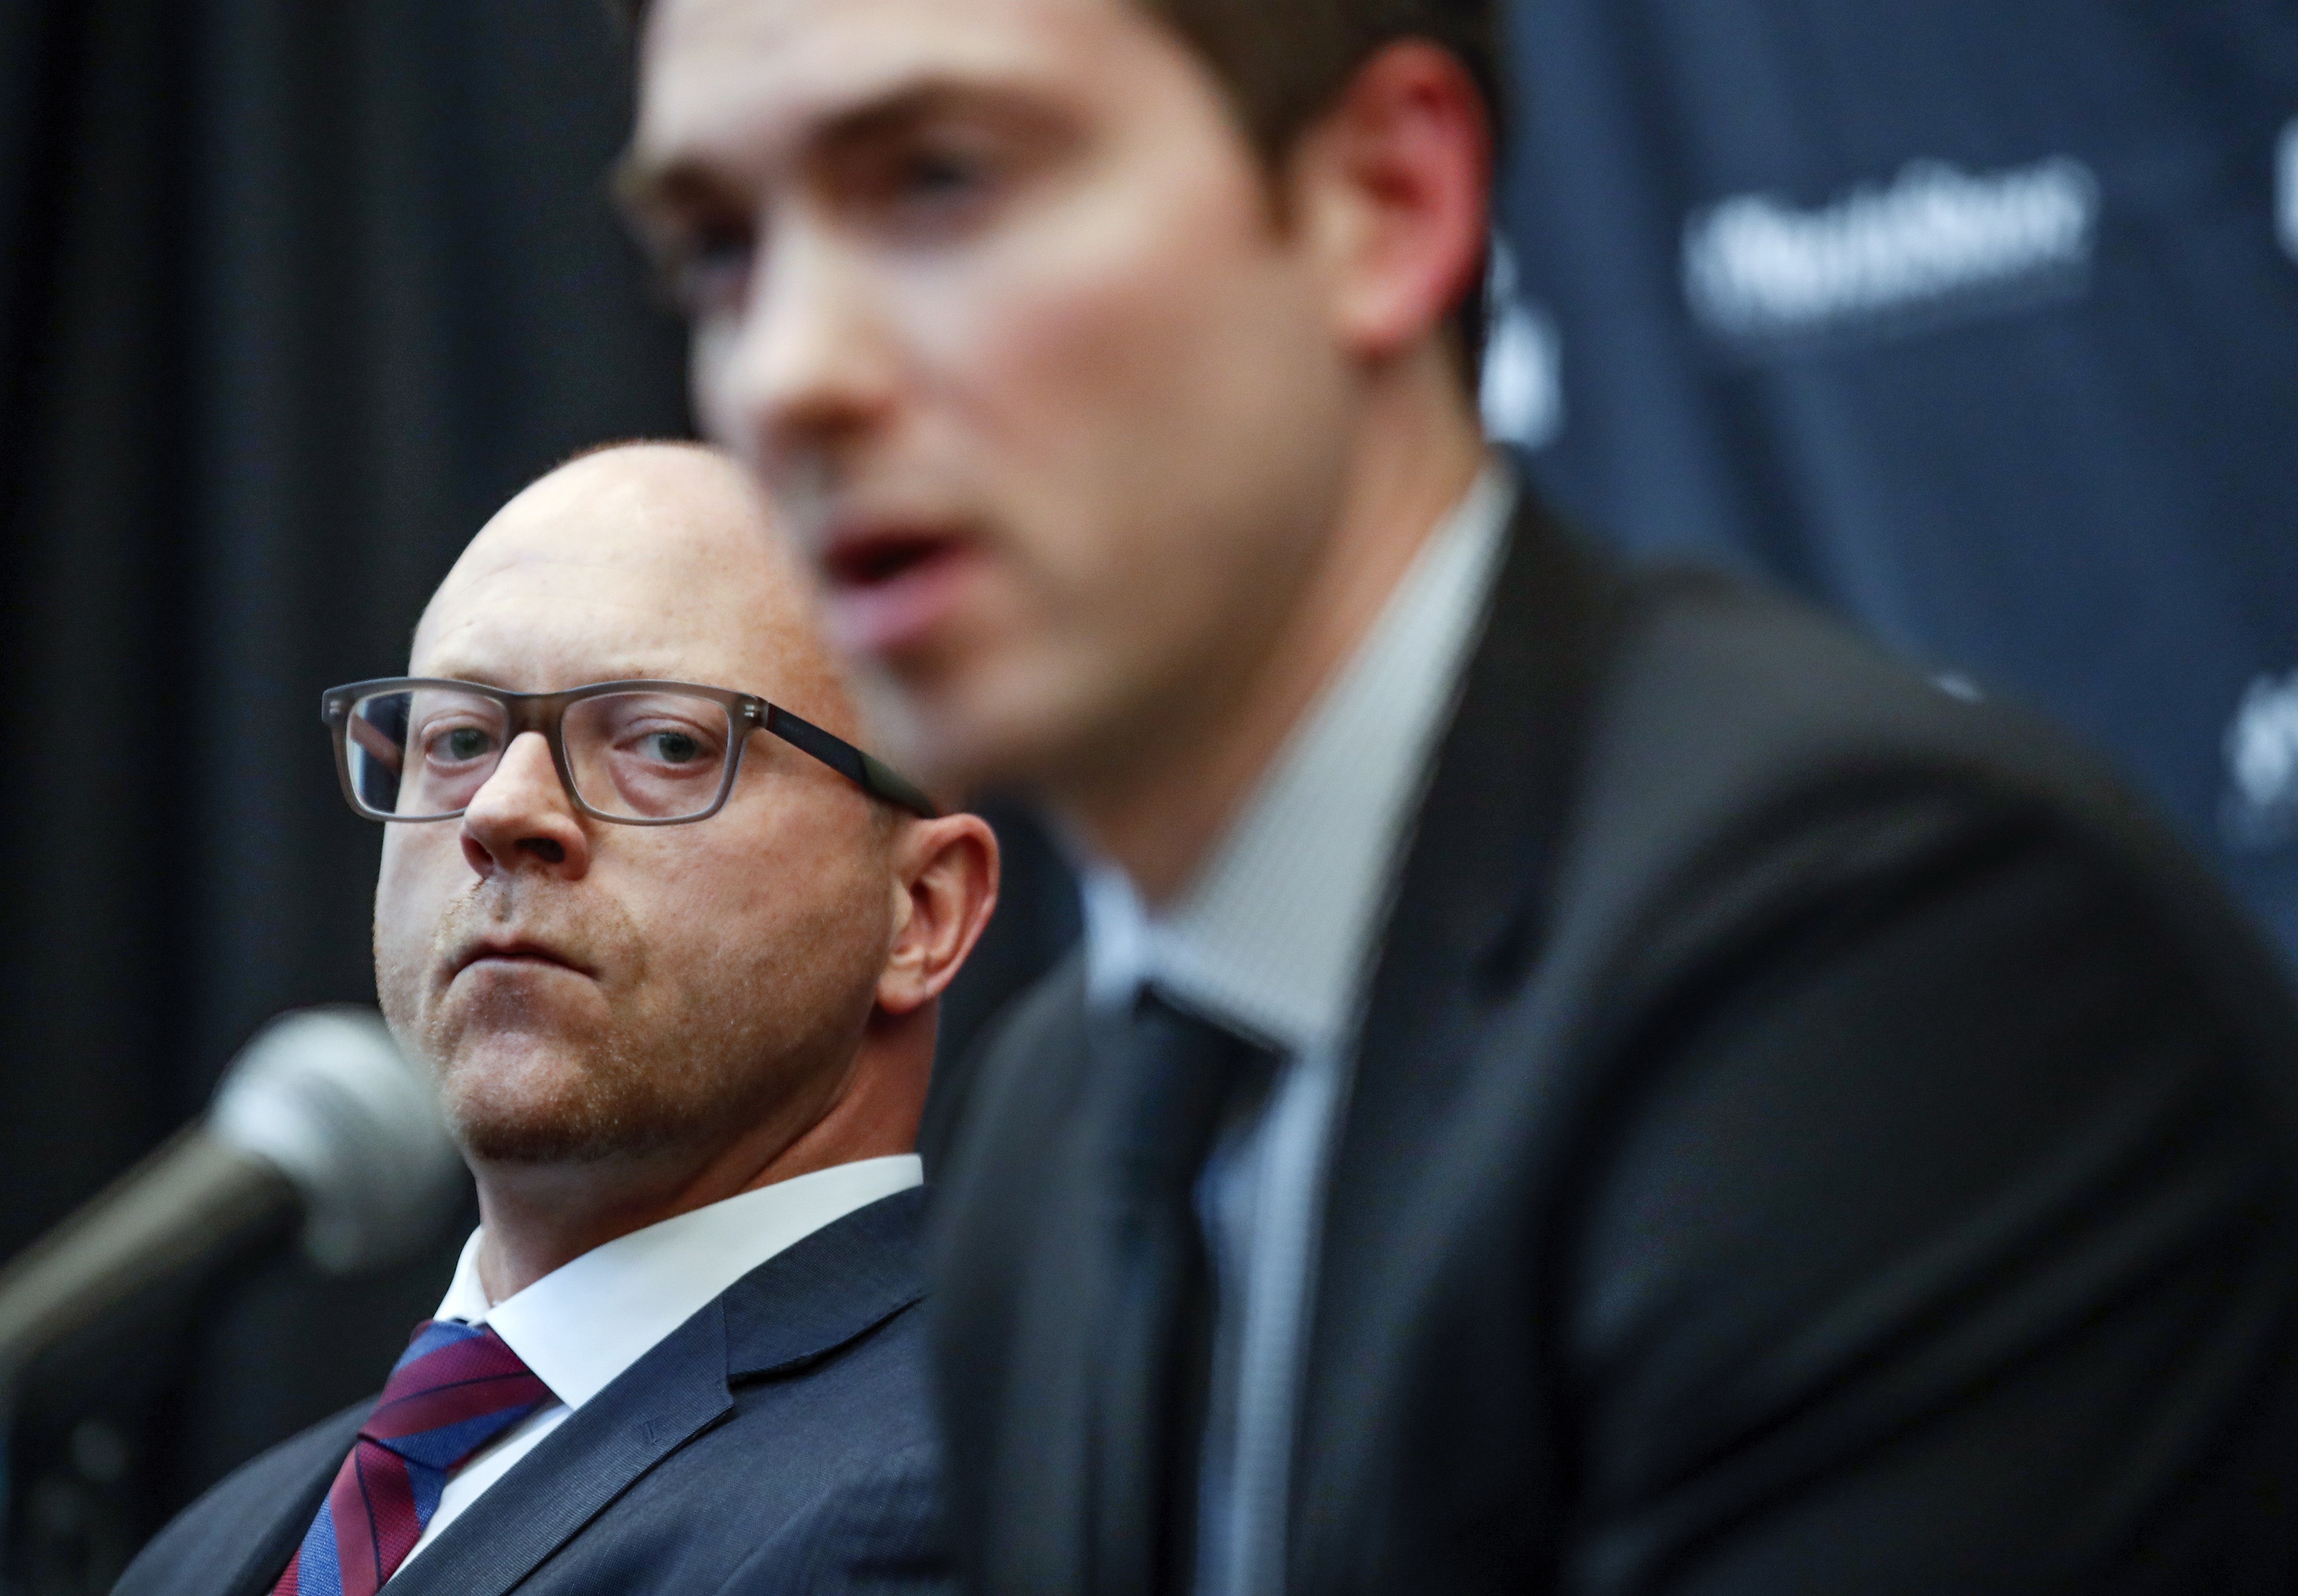 Blackhawks general manager Stan Bowman said Tuesday's letter will be the first of many open discussions with fans about the team's plans.